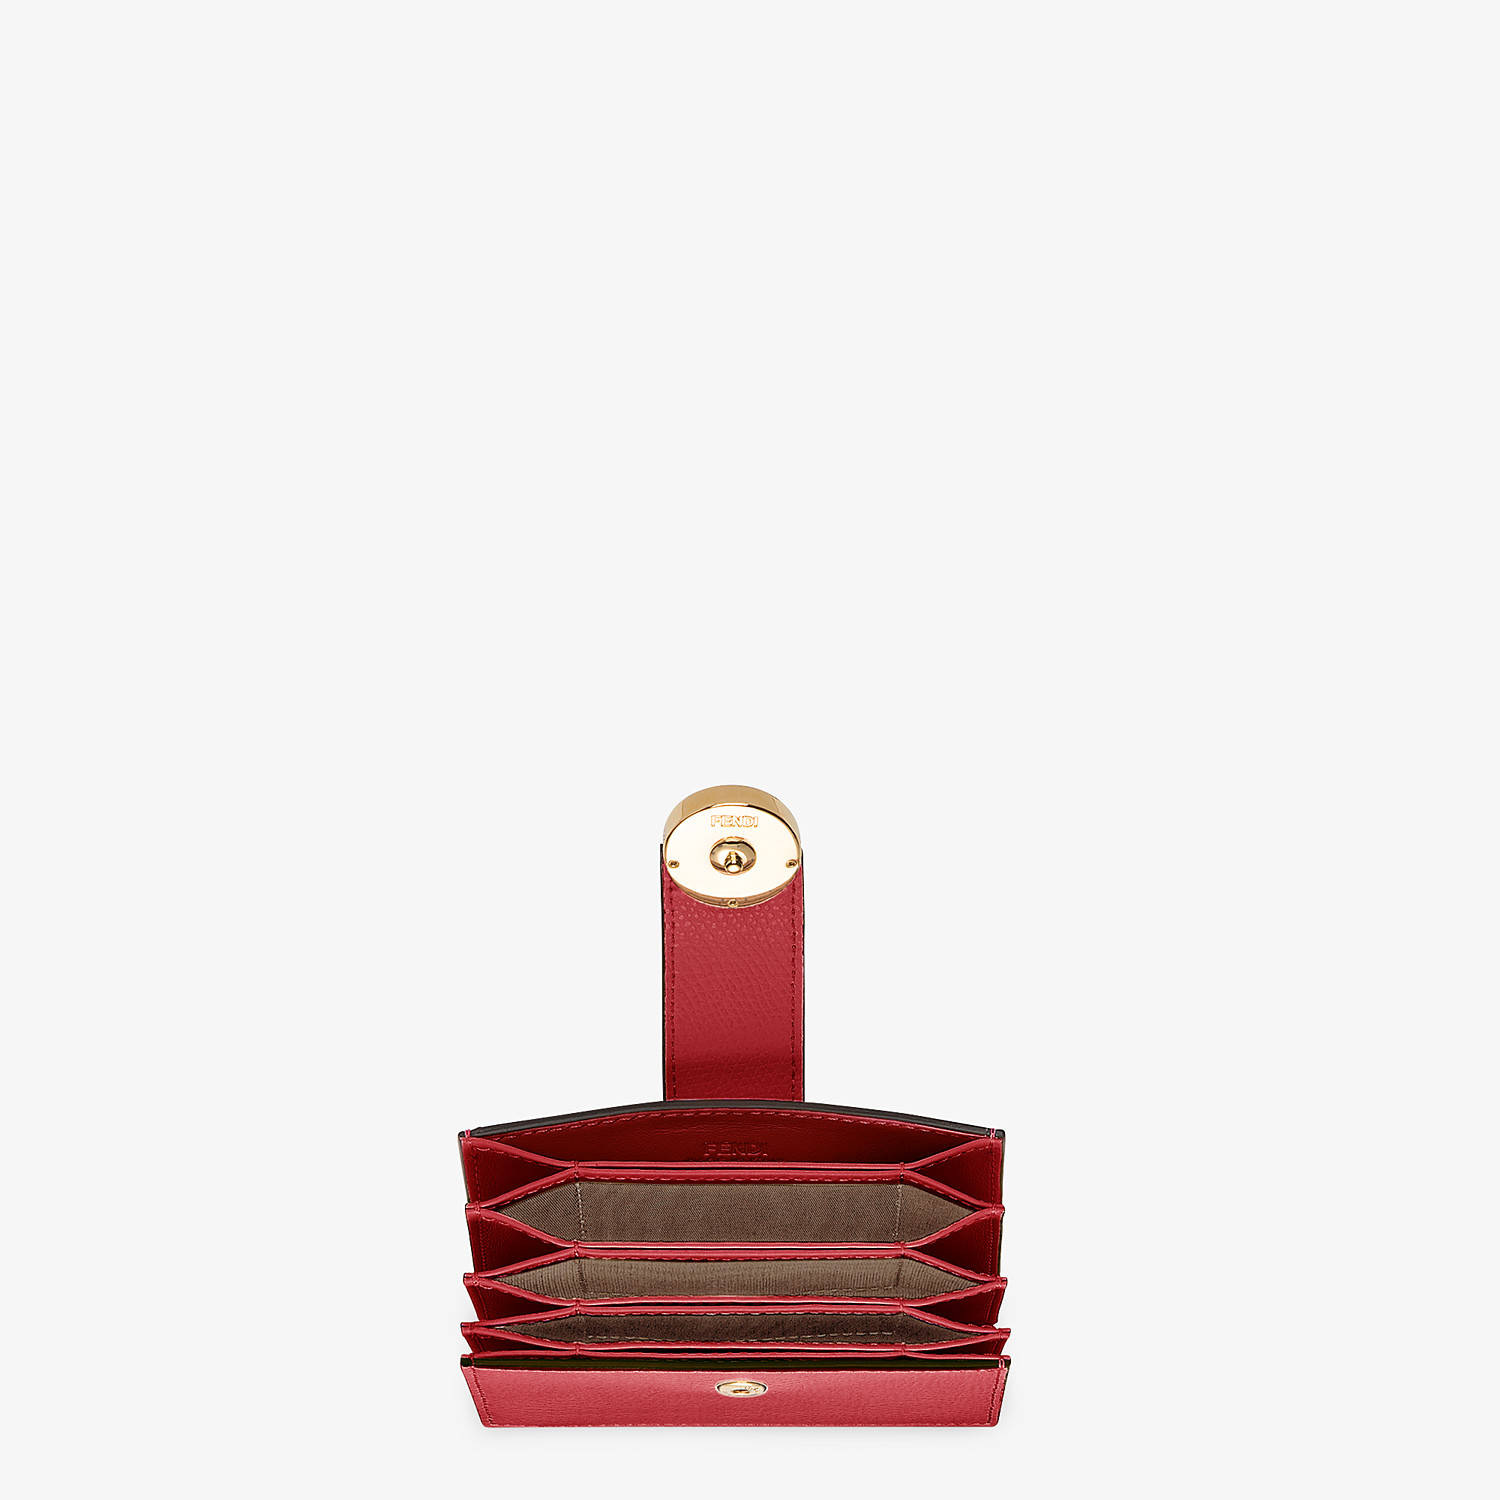 FENDI CARD HOLDER - Red leather gusseted card holder - view 4 detail